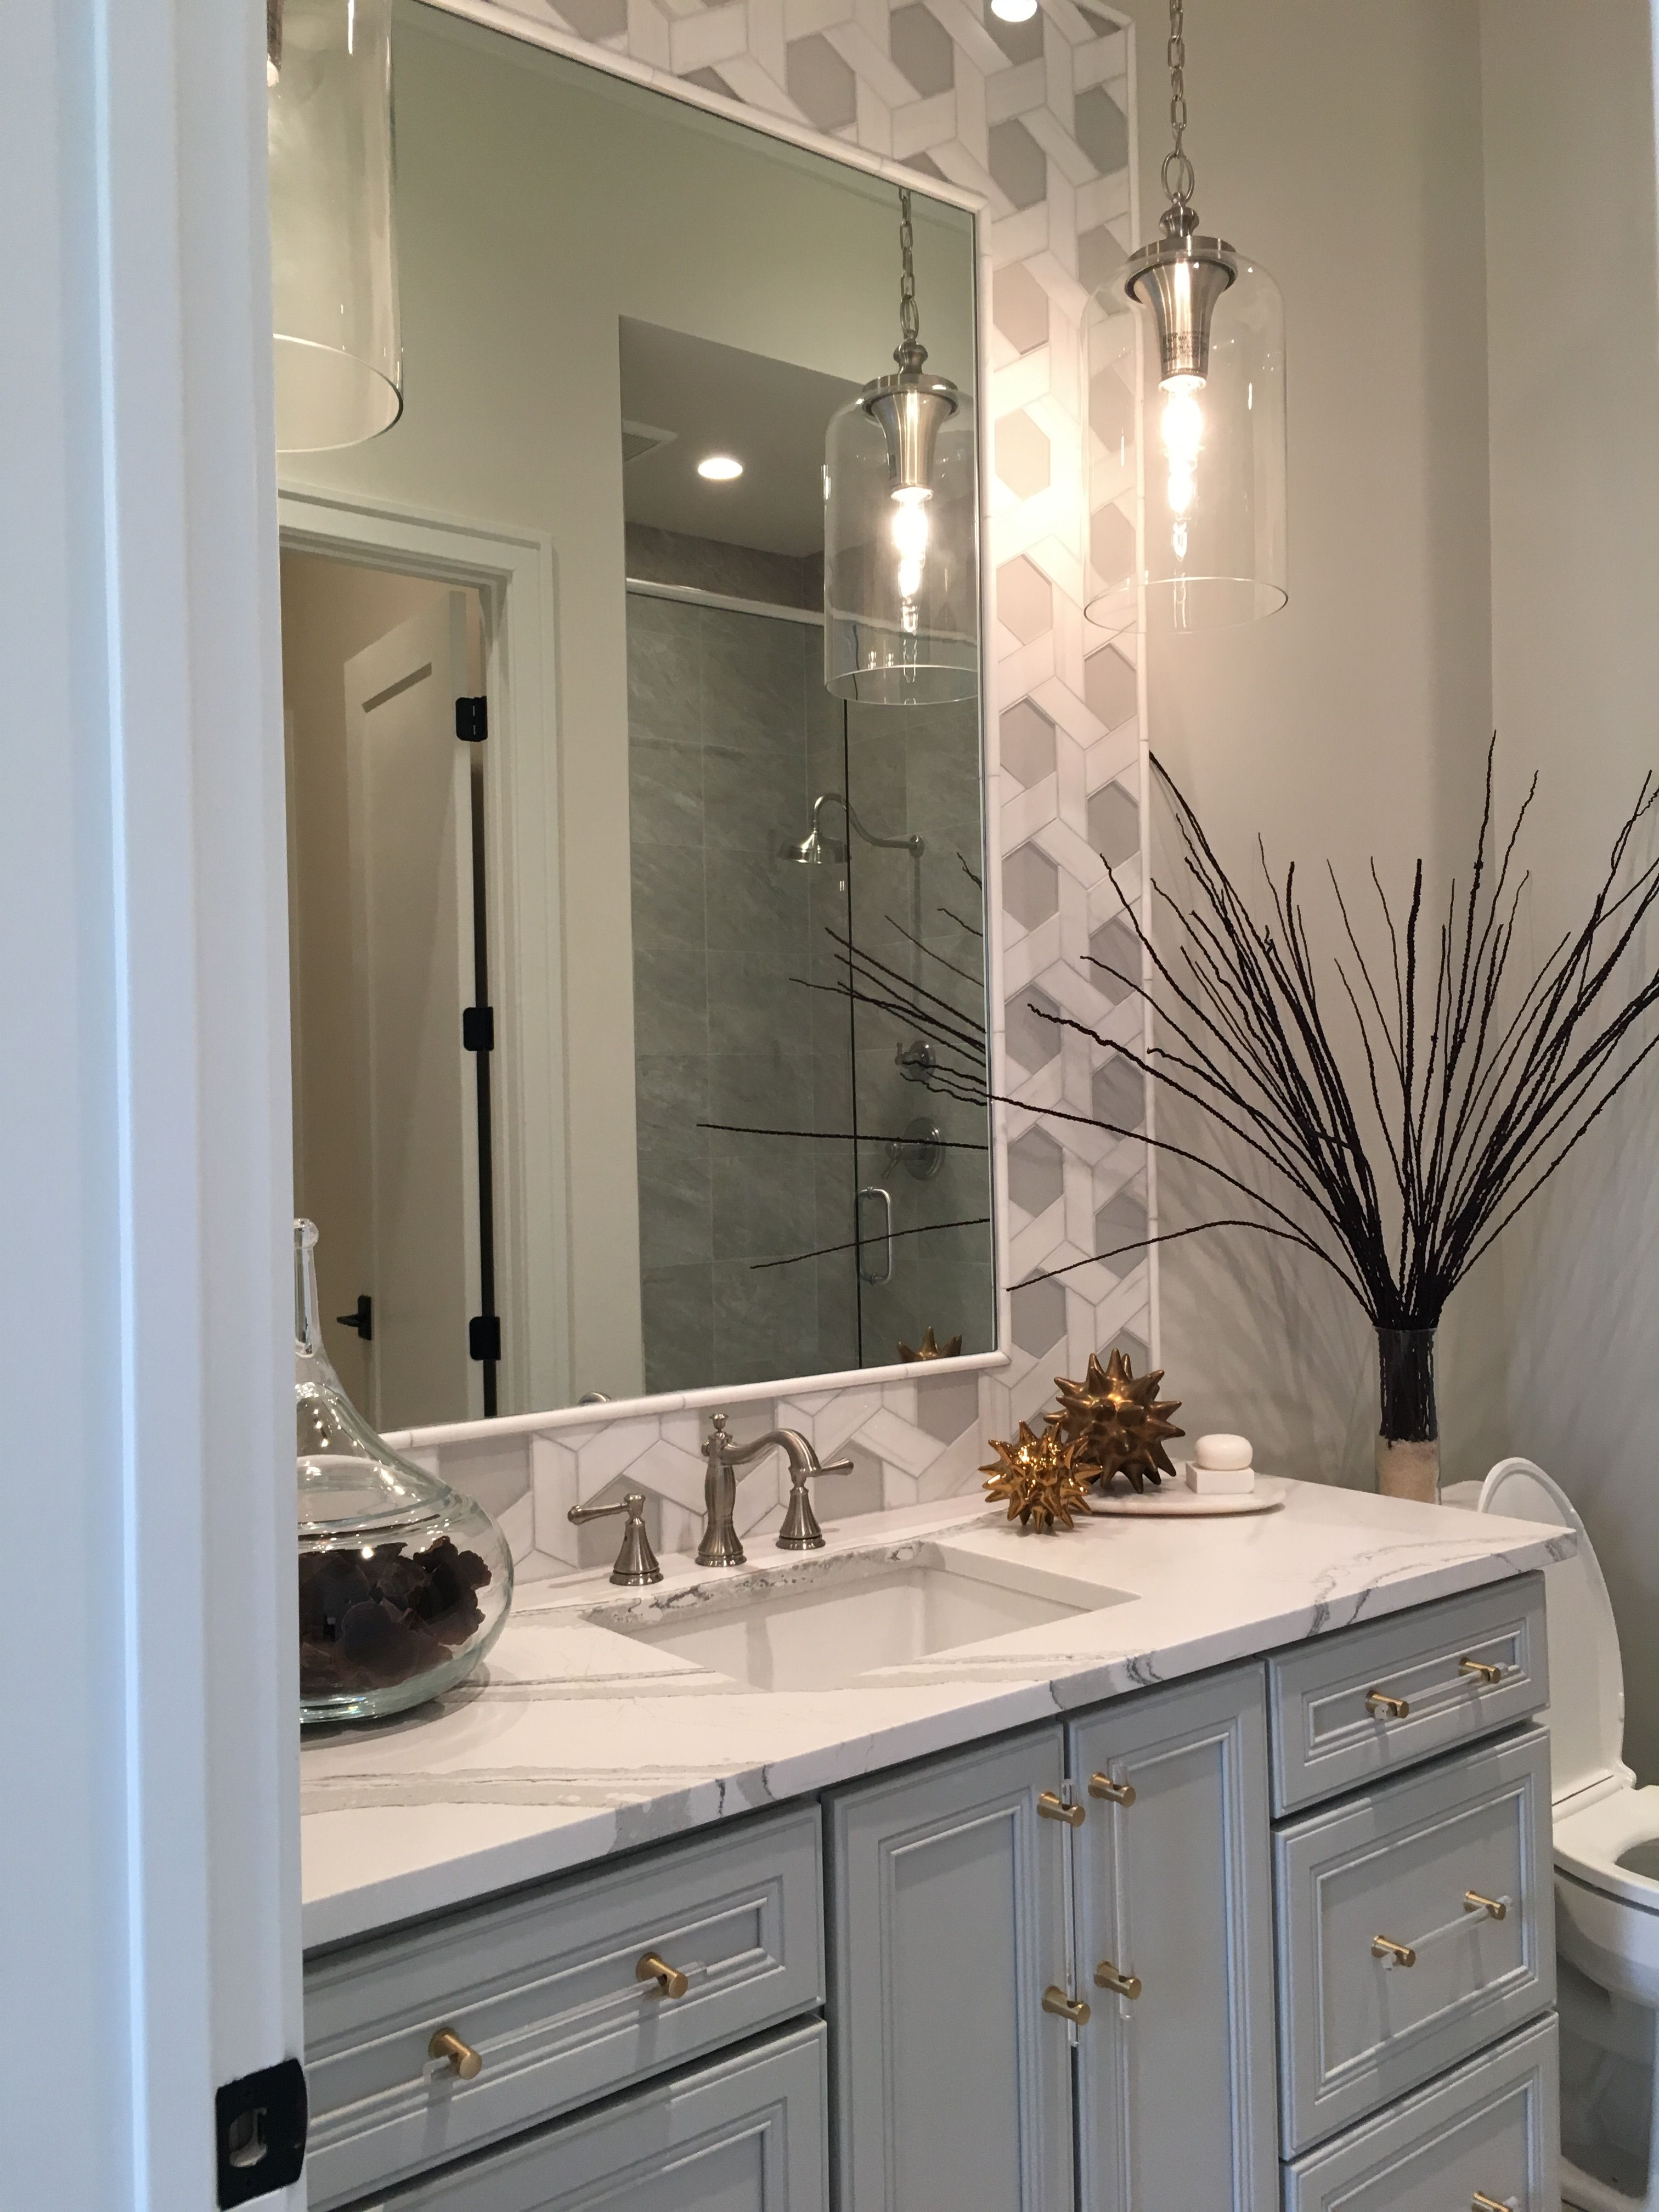 Hang Pendants On Each Side Of Sink Instead Of Single Over Mirror Sconce Chic Bathrooms Bathroom With Sconces Bathroom Single Sink